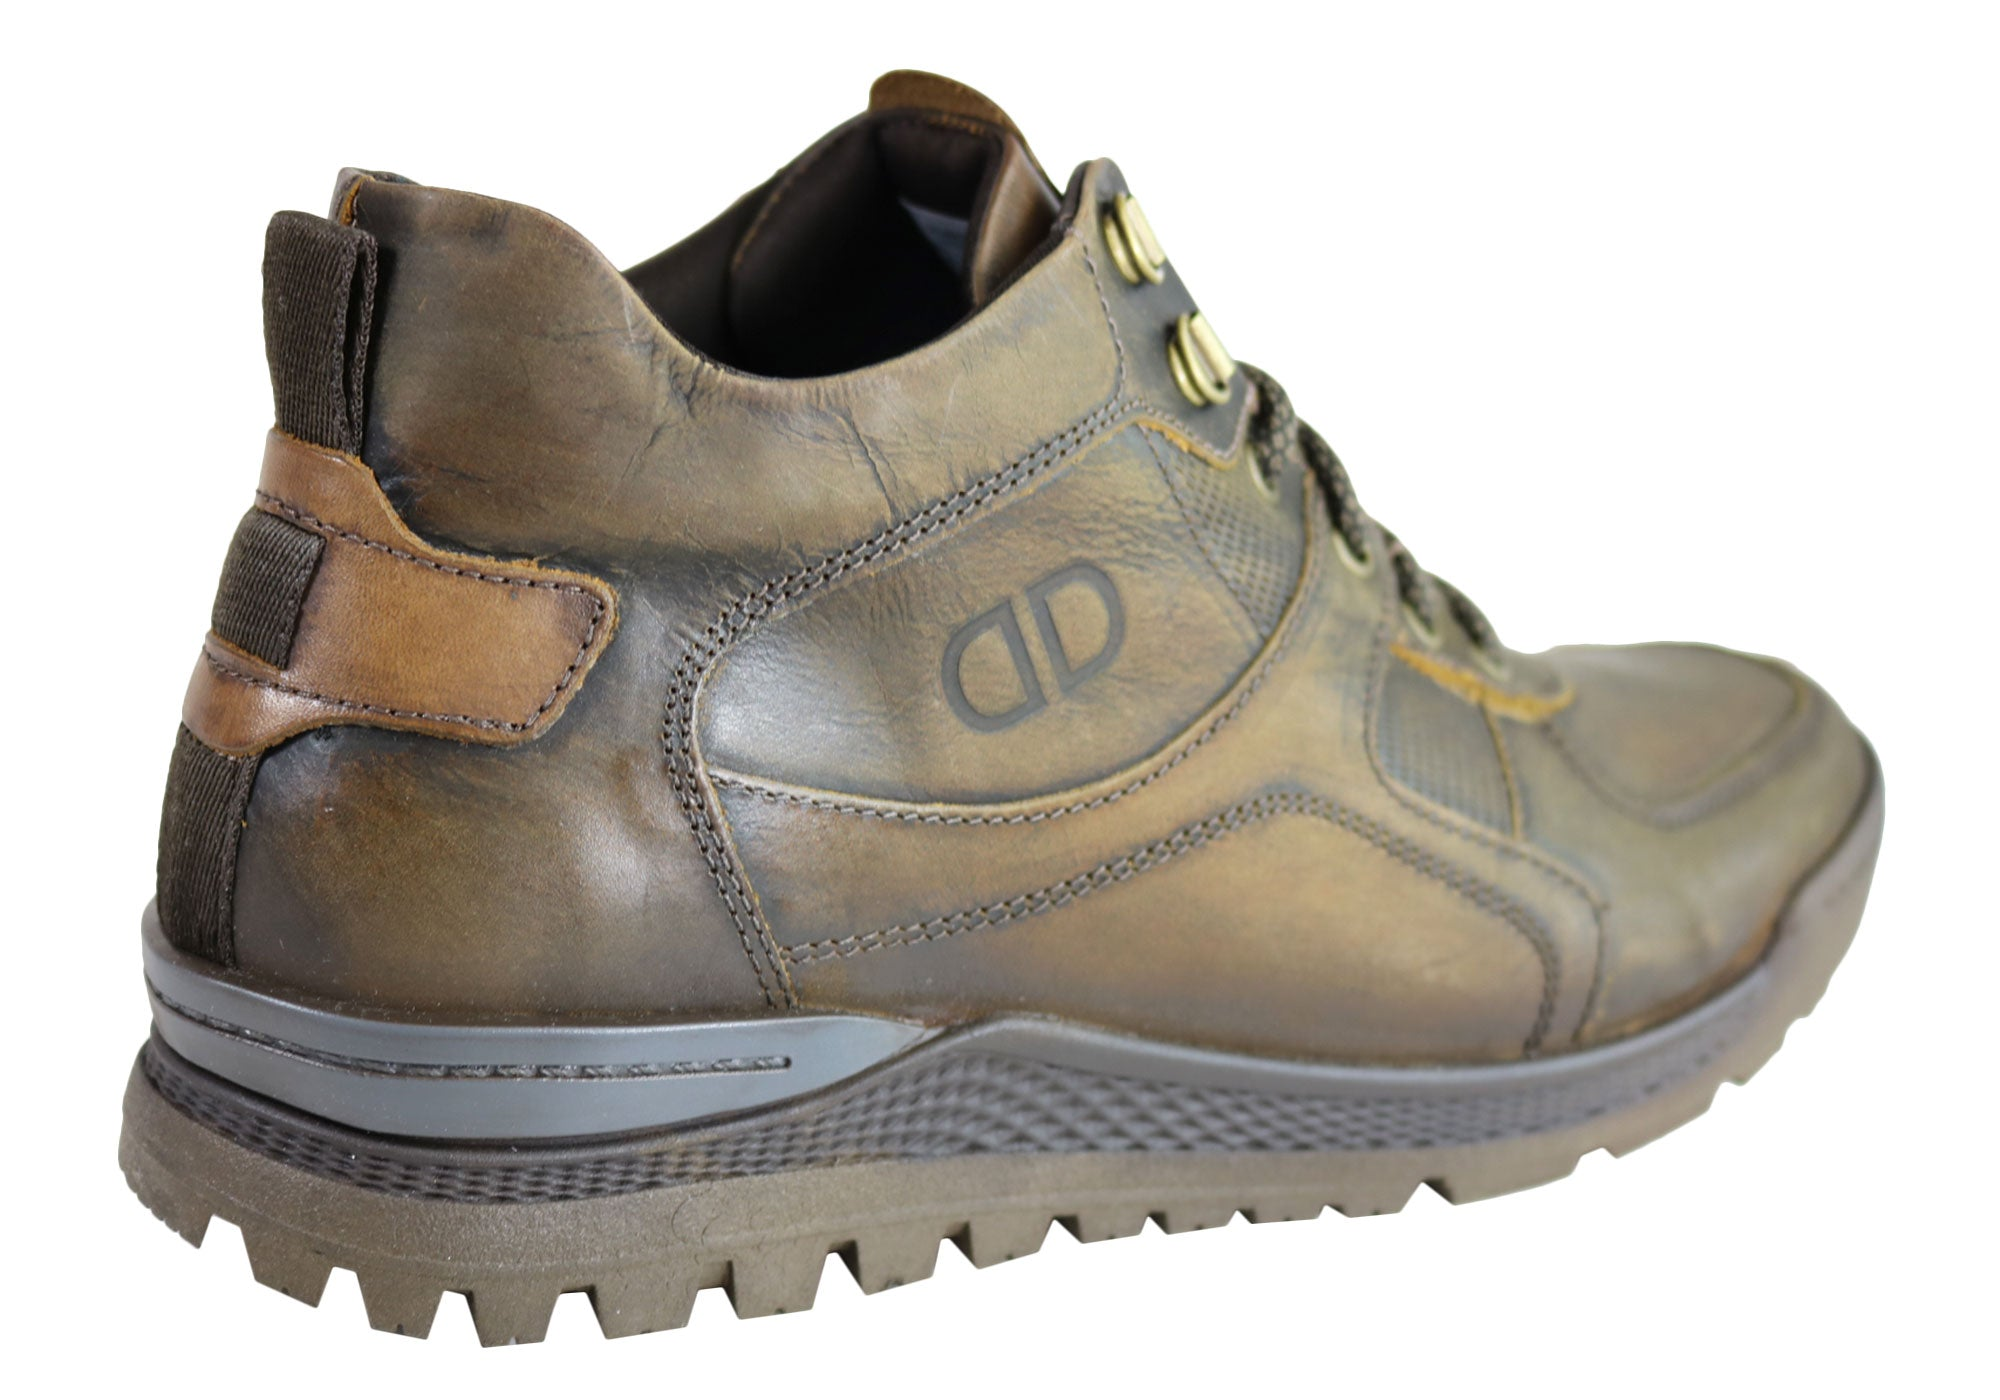 NEW-DEMOCRATA-DIEGO-MENS-LEATHER-LACE-UP-DRESS-BOOTS-MADE-IN-BRAZIL thumbnail 8